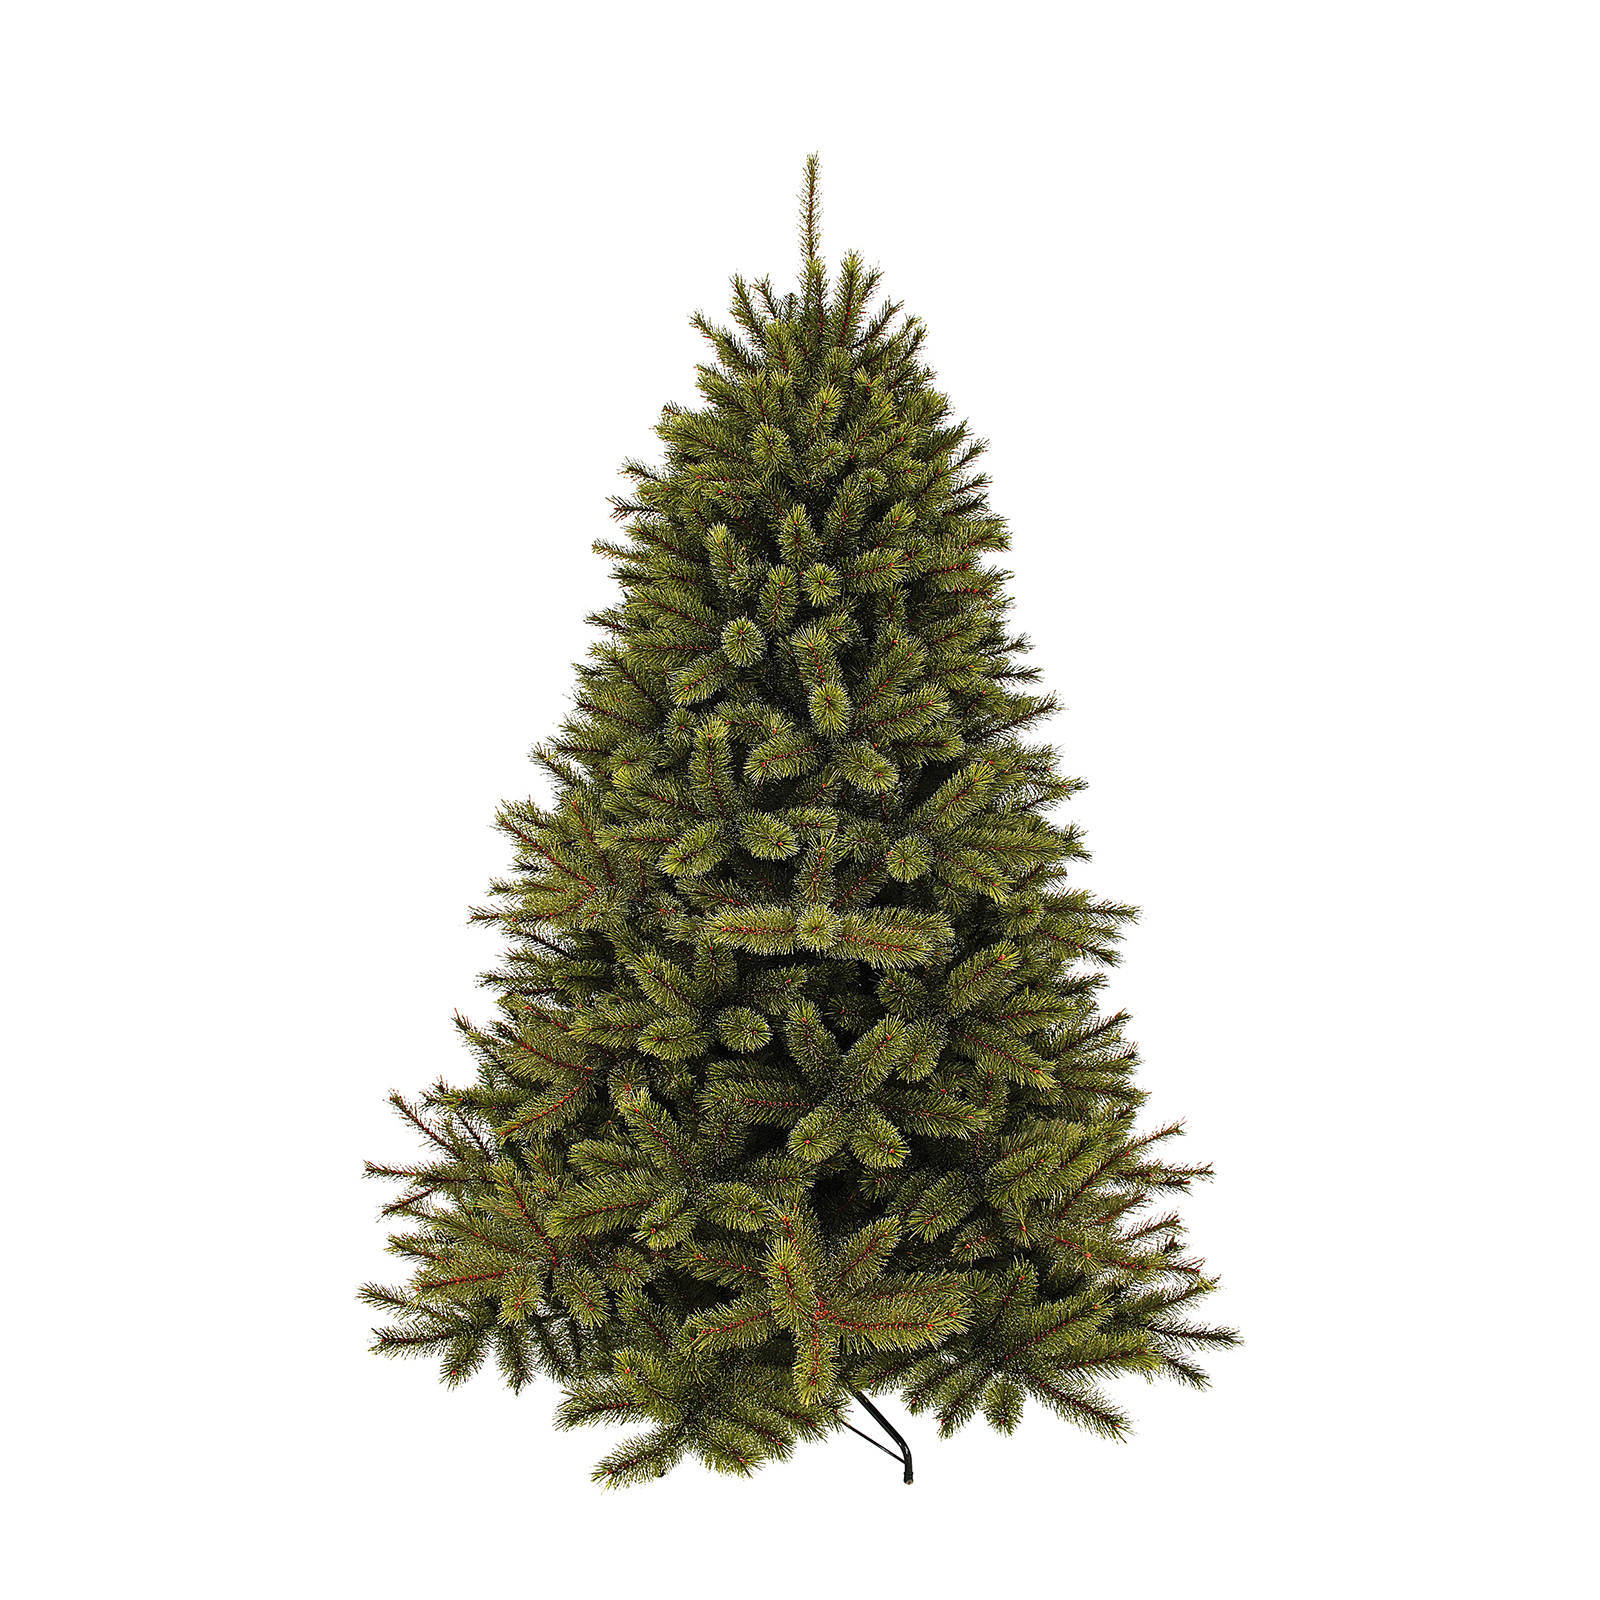 Triumph Tree kerstboom Forest Frosted Pine (h155 x ø119 cm)